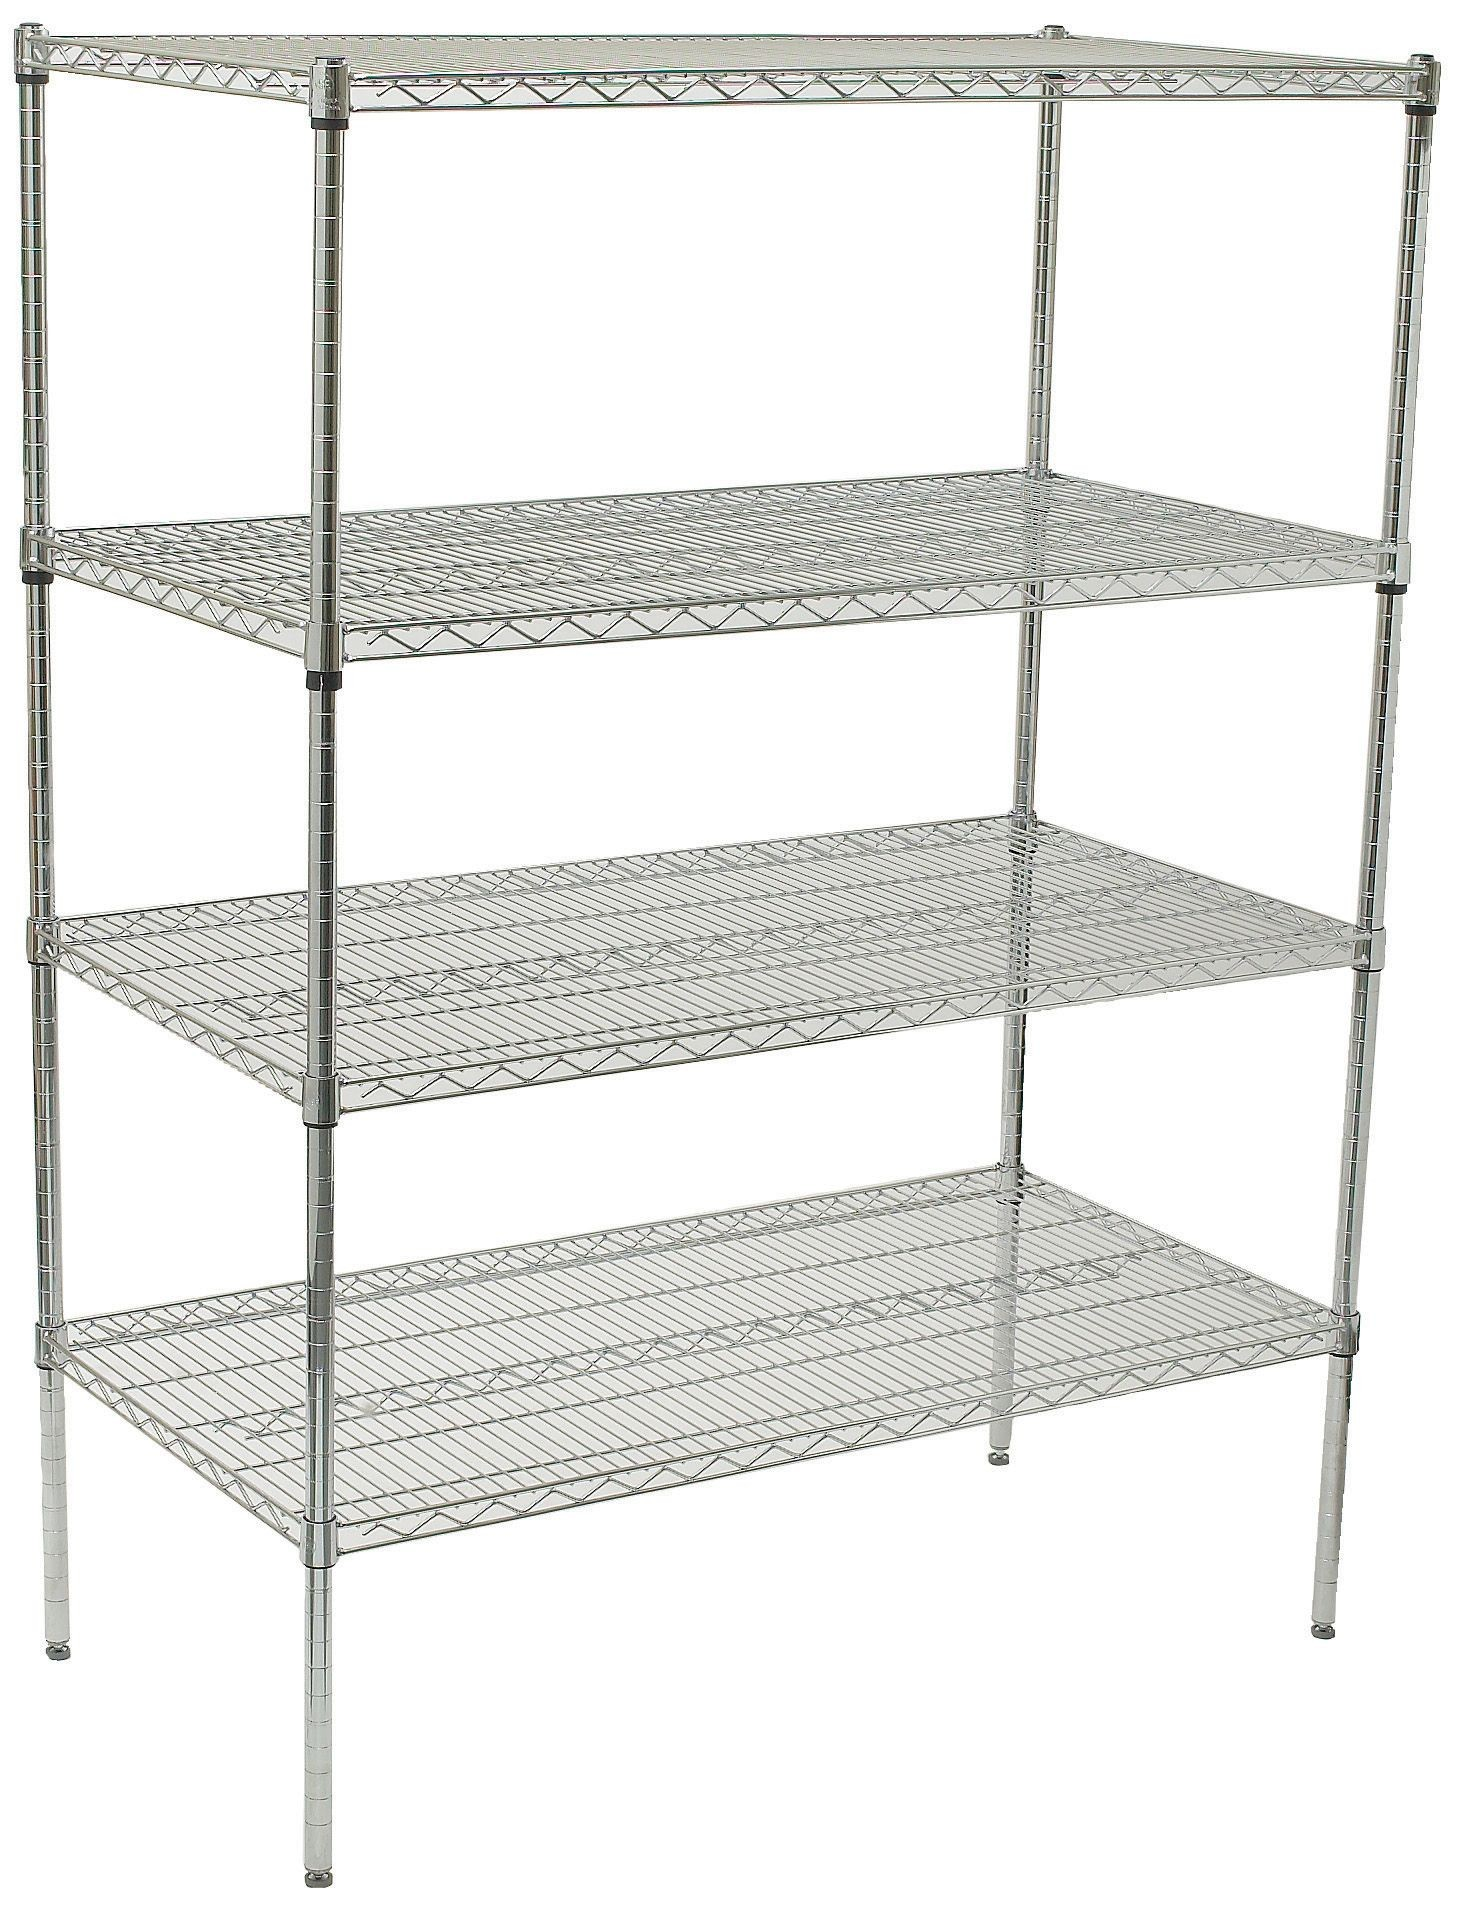 """Winco VCS-2436 Chrome Plated 4-Tier Wire Shelving Set, 24"""" x 36"""" x 72"""""""